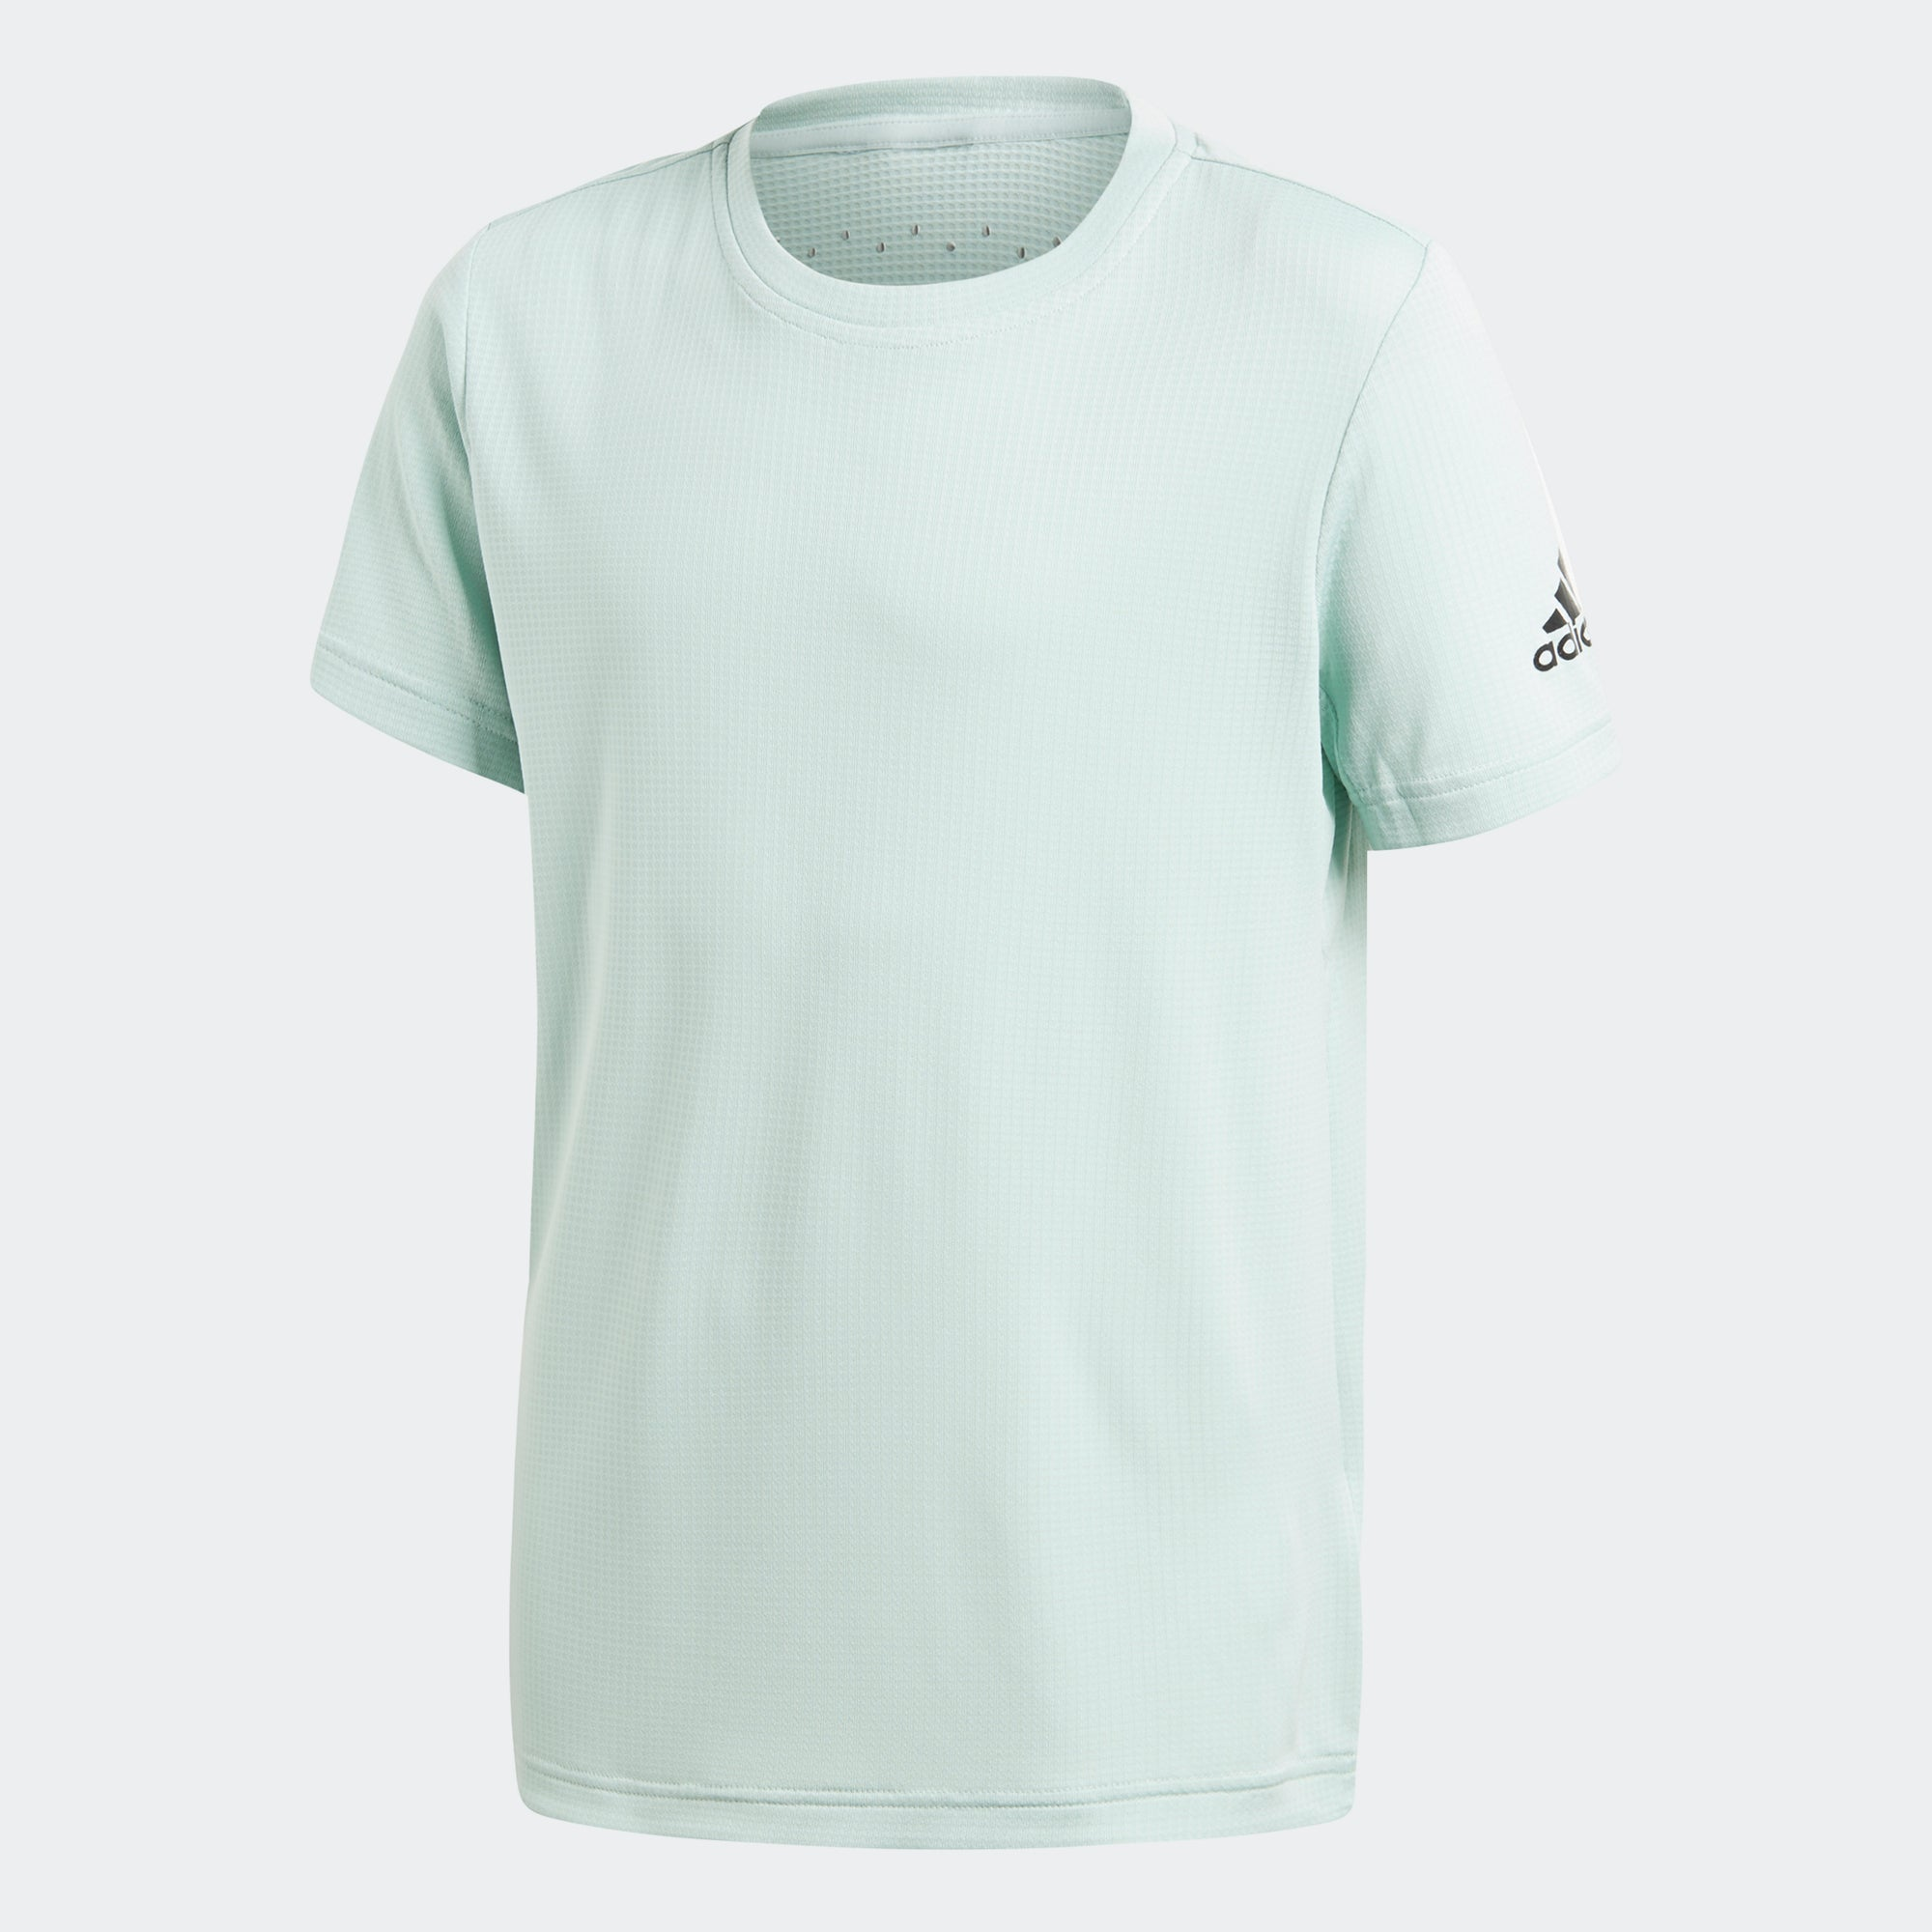 083ae47835e16b Buy adidas Boys Training Climachill Tee